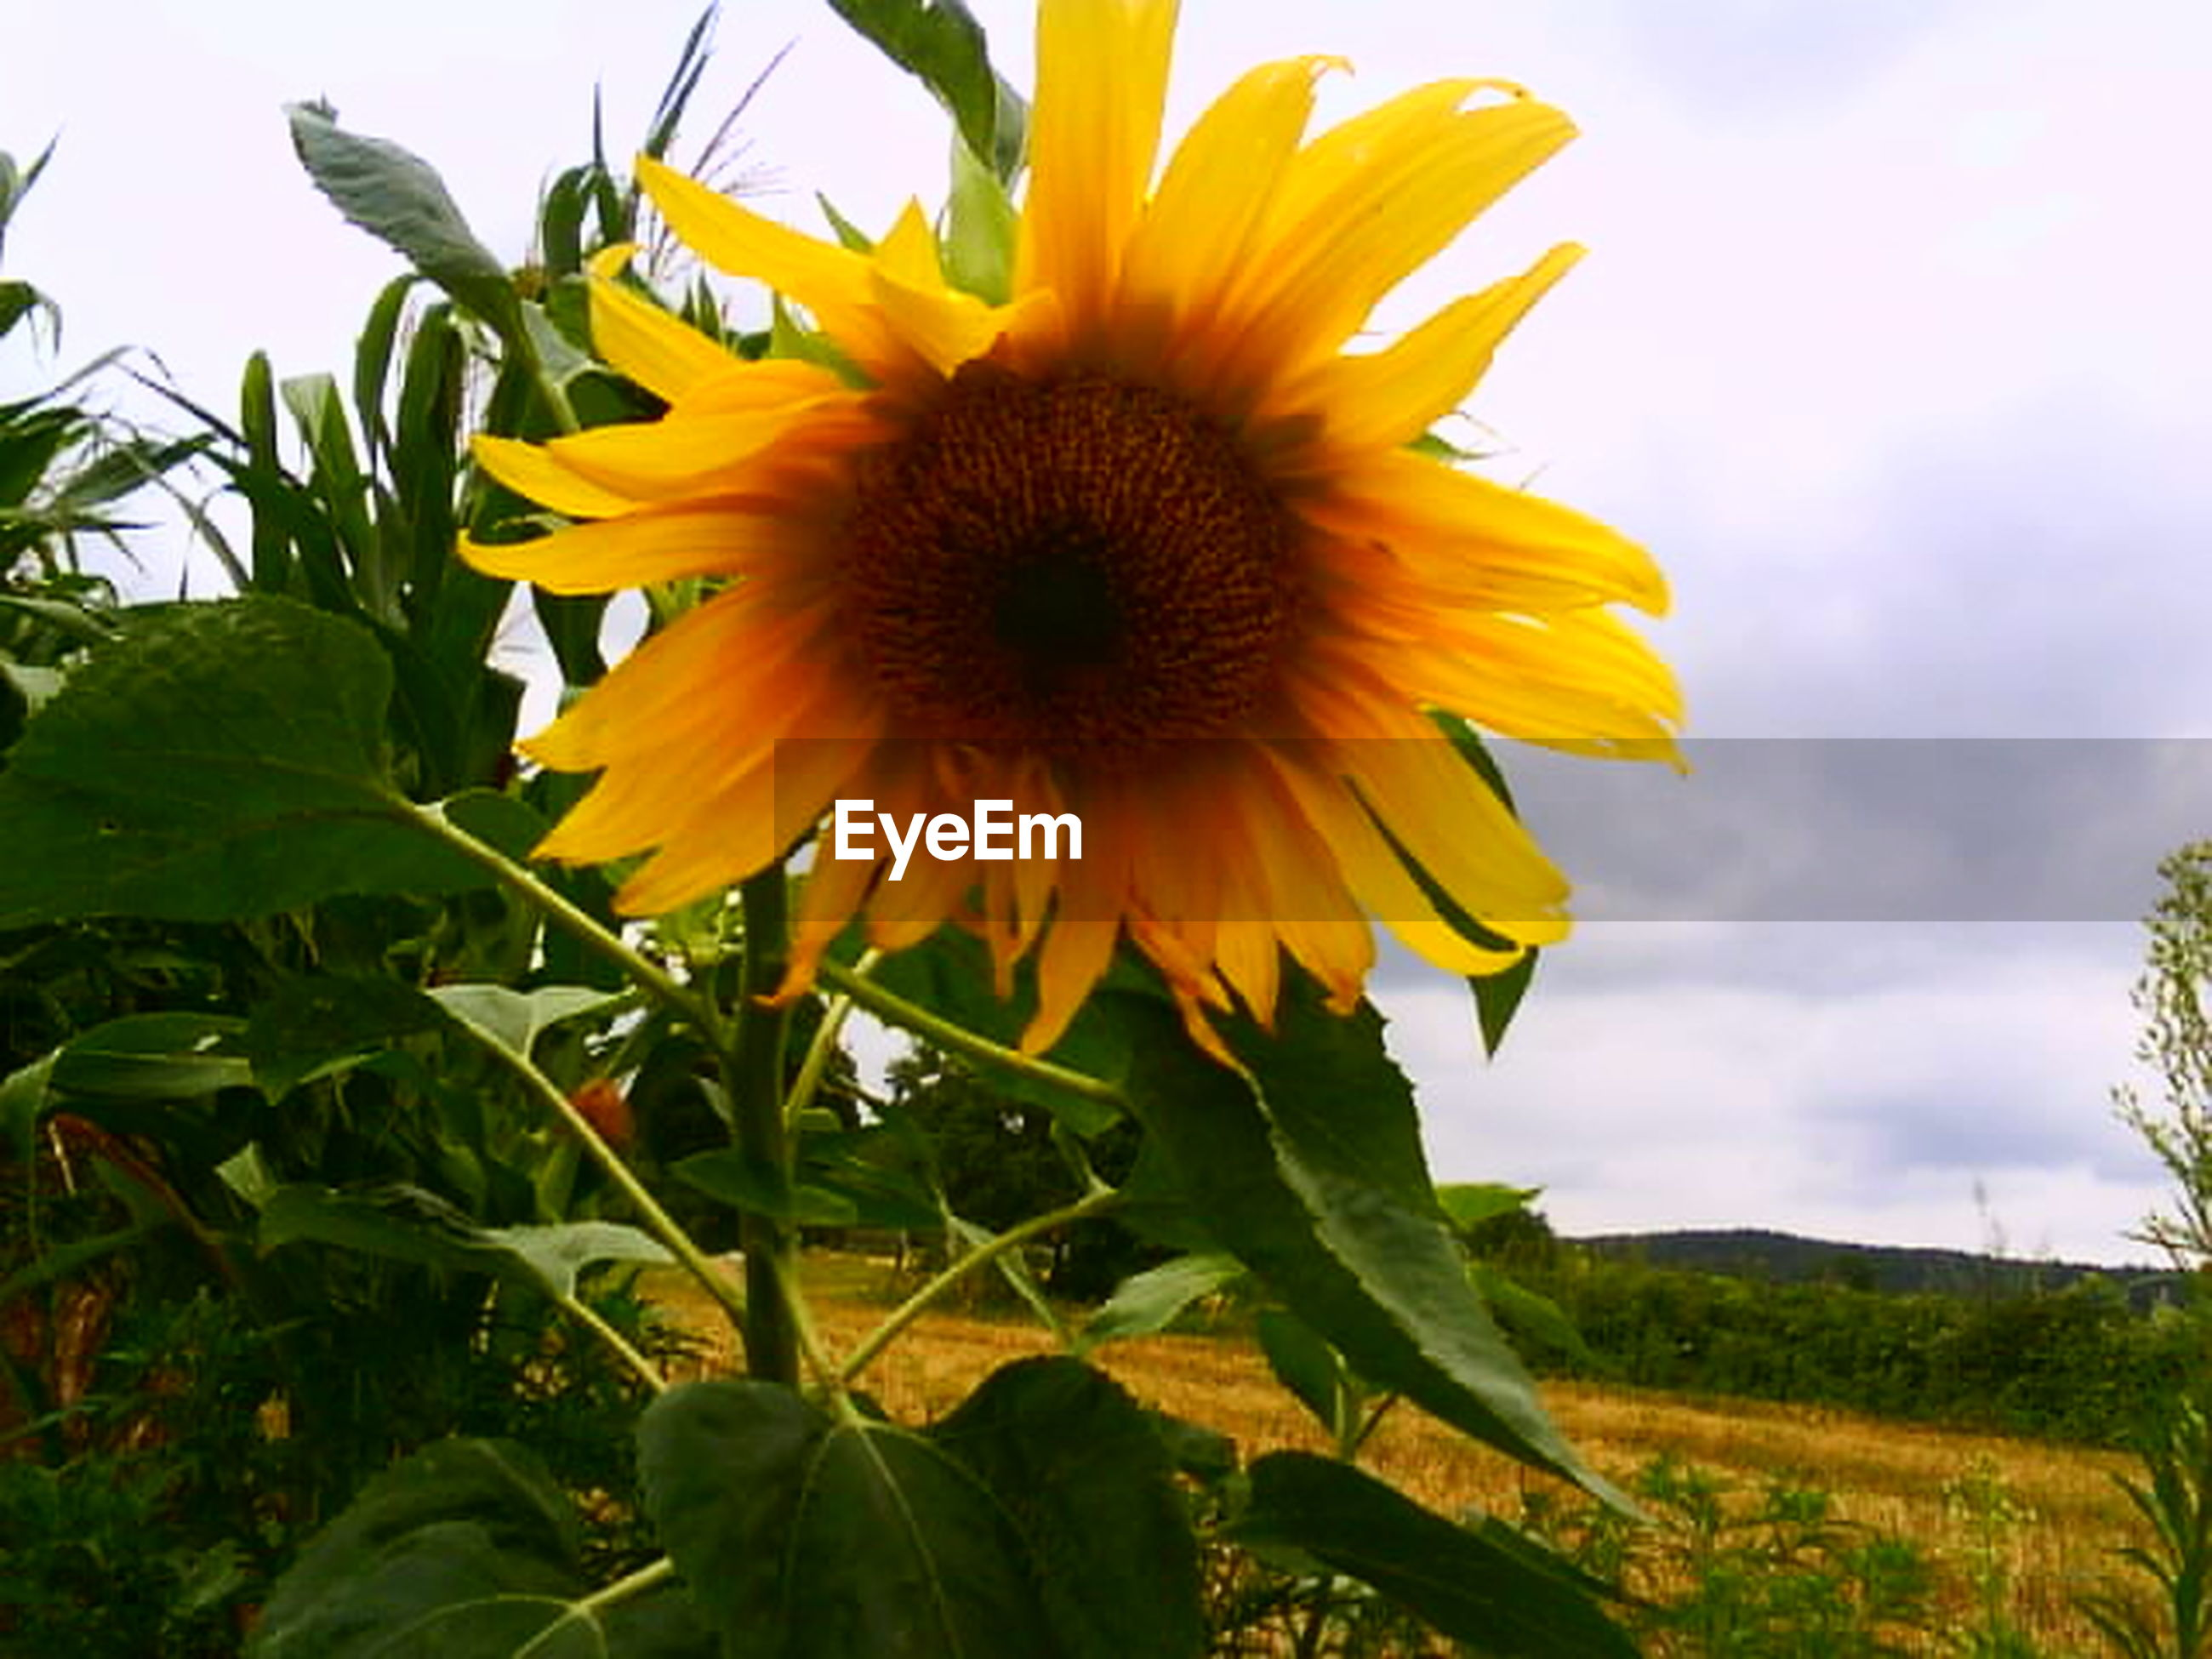 flower, freshness, petal, yellow, flower head, sunflower, fragility, growth, beauty in nature, blooming, sky, plant, pollen, leaf, nature, field, close-up, single flower, in bloom, focus on foreground